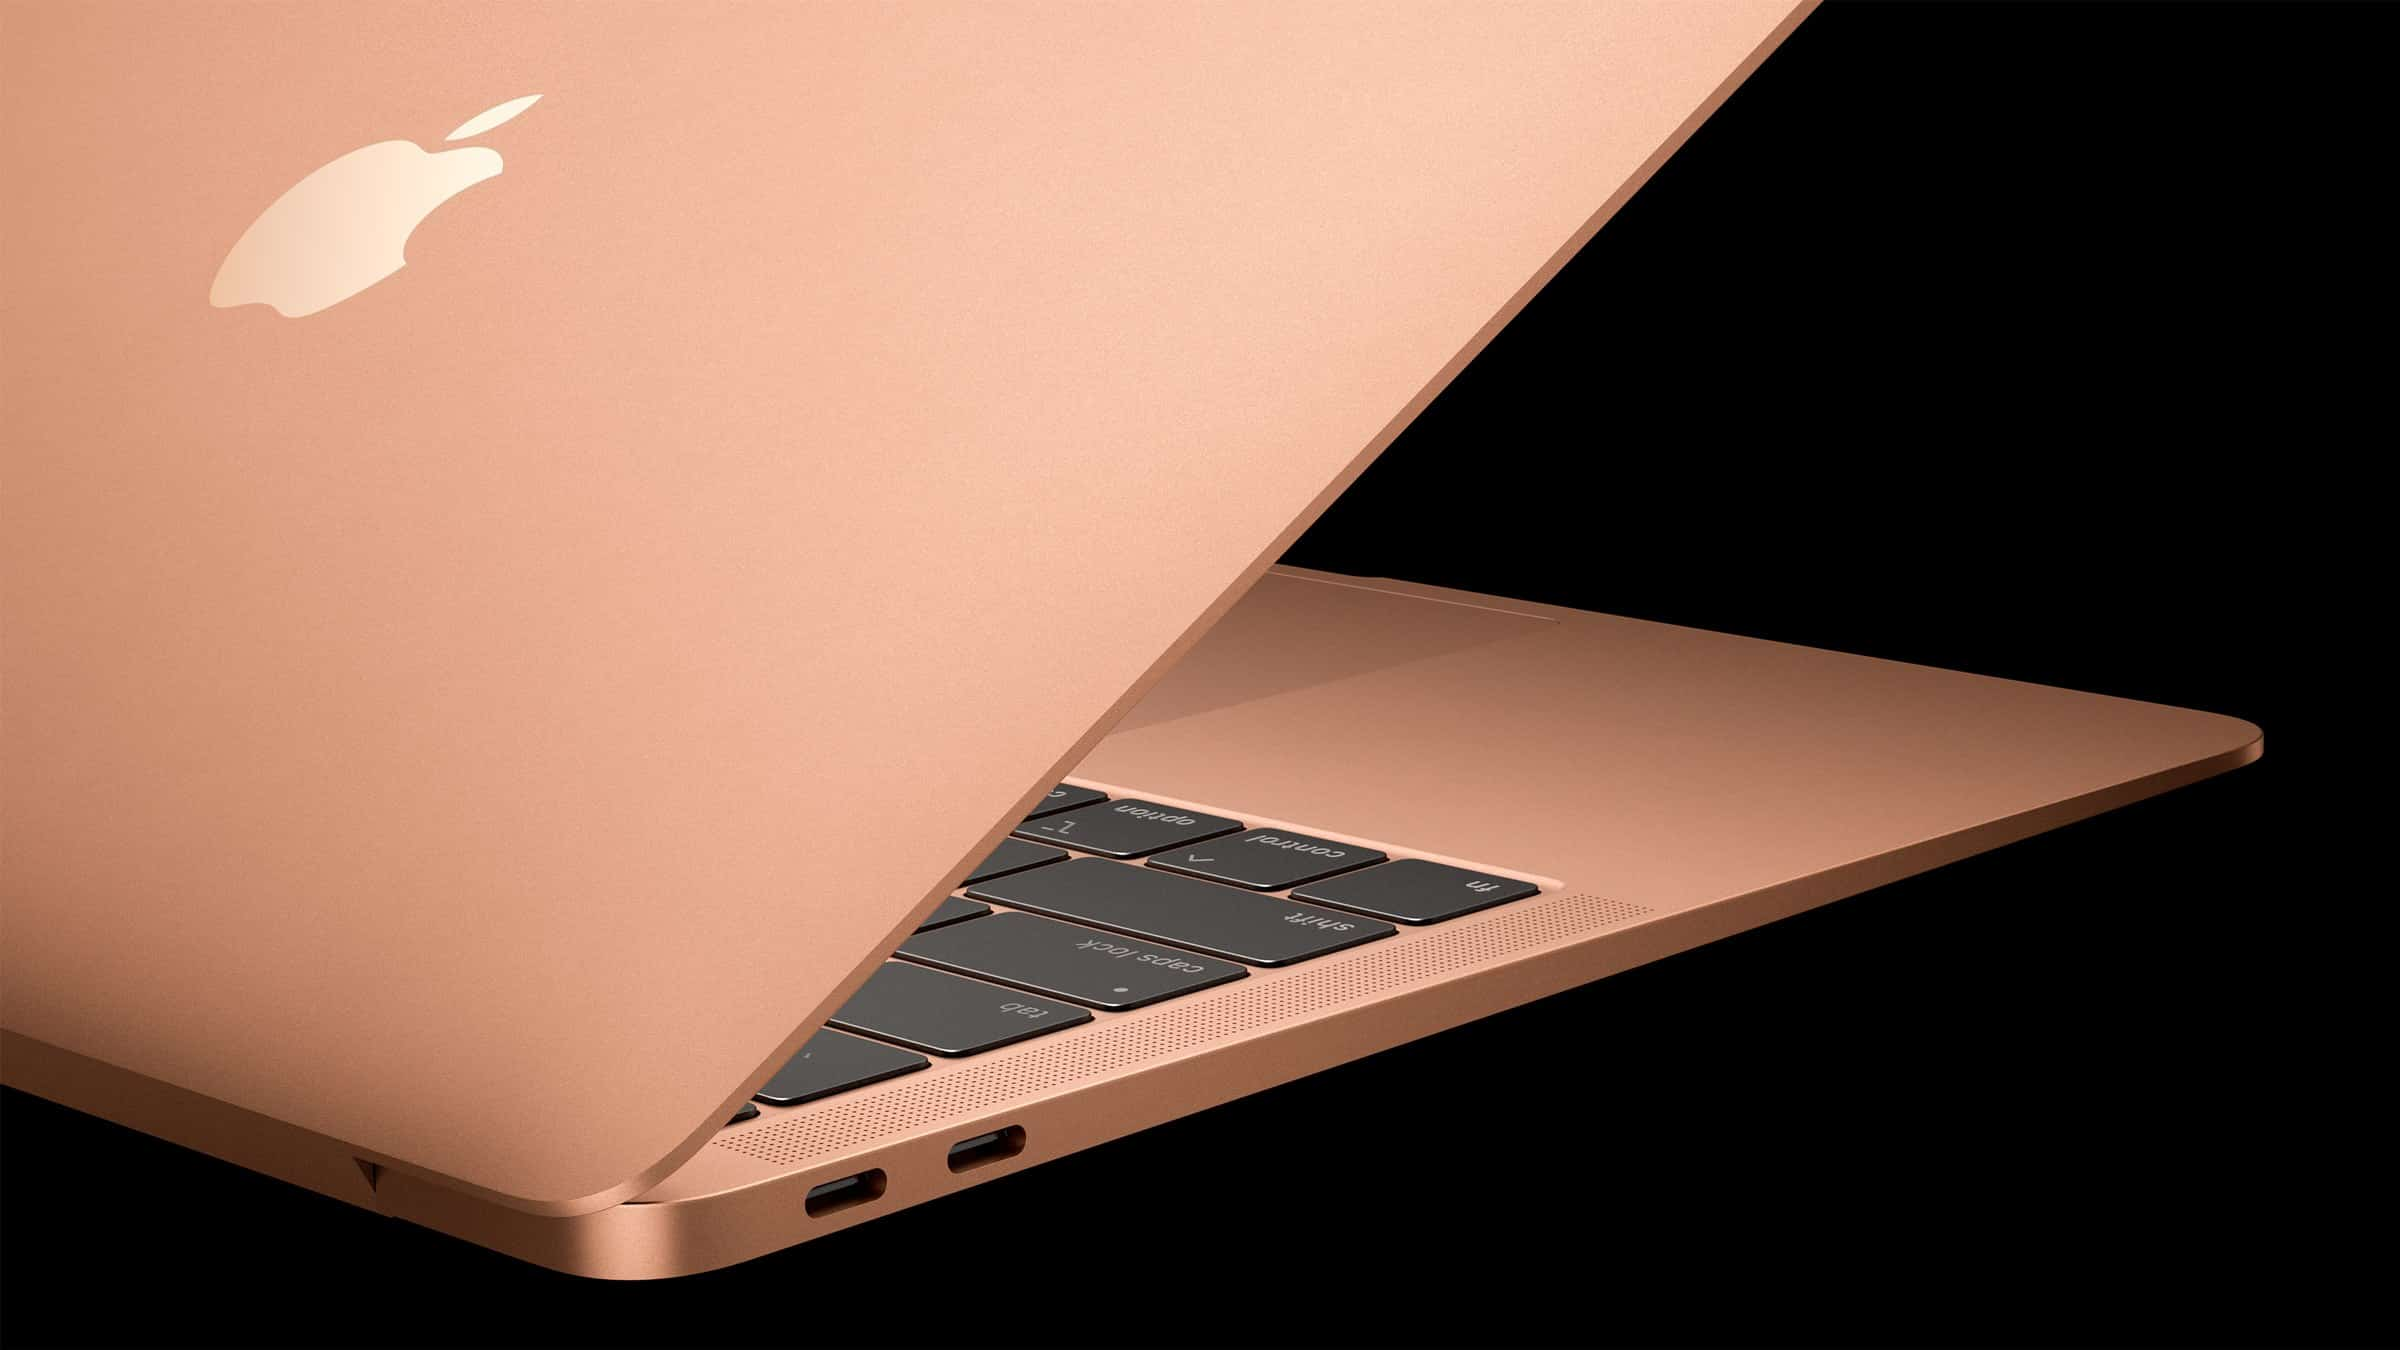 Buy the MacBook Air (256GB) on Amazon for $999 1